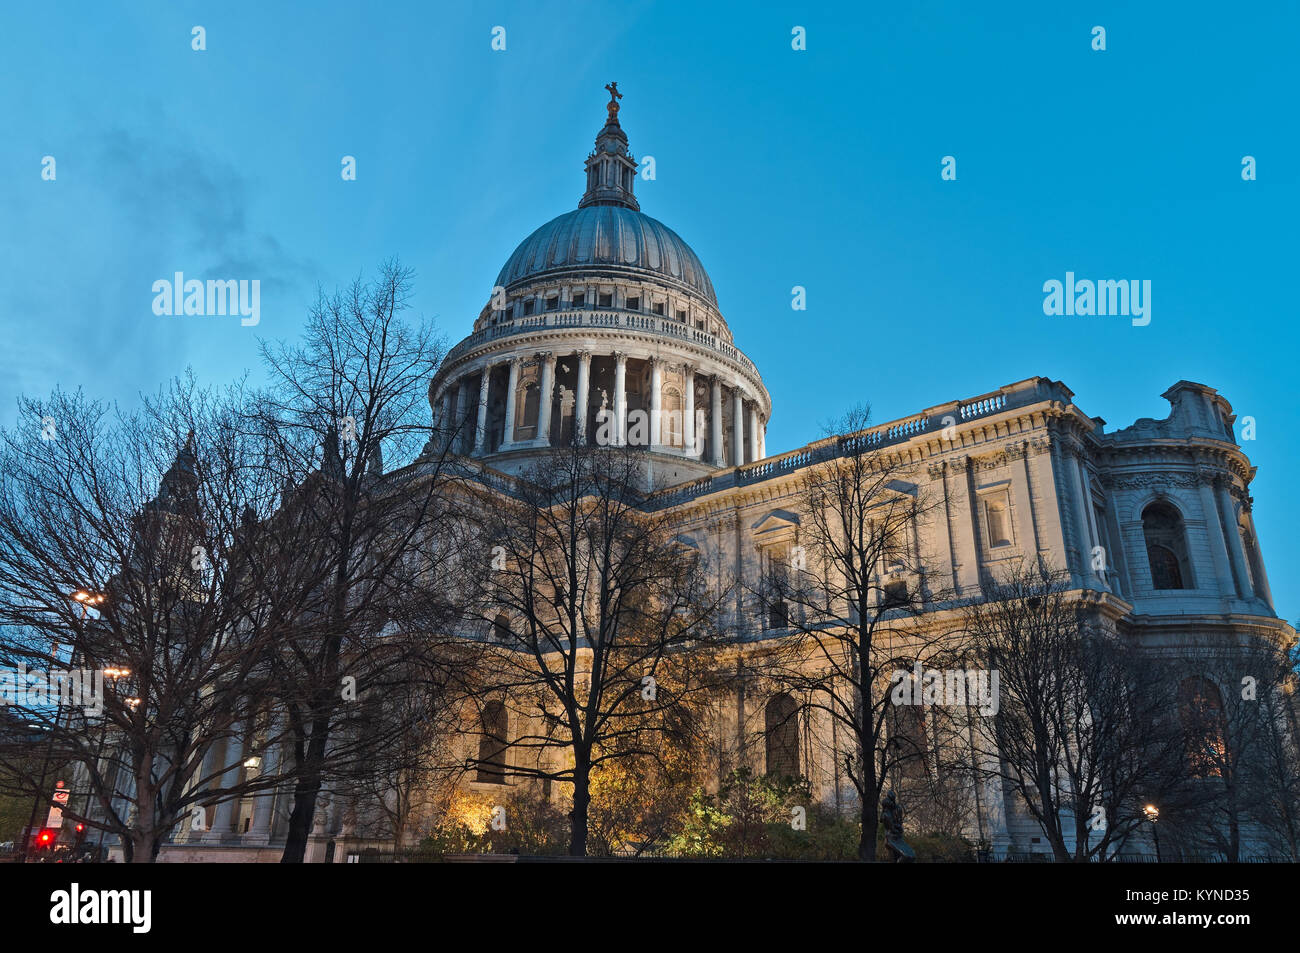 Saint Paul's Cathedral. London. England, UK Stock Photo